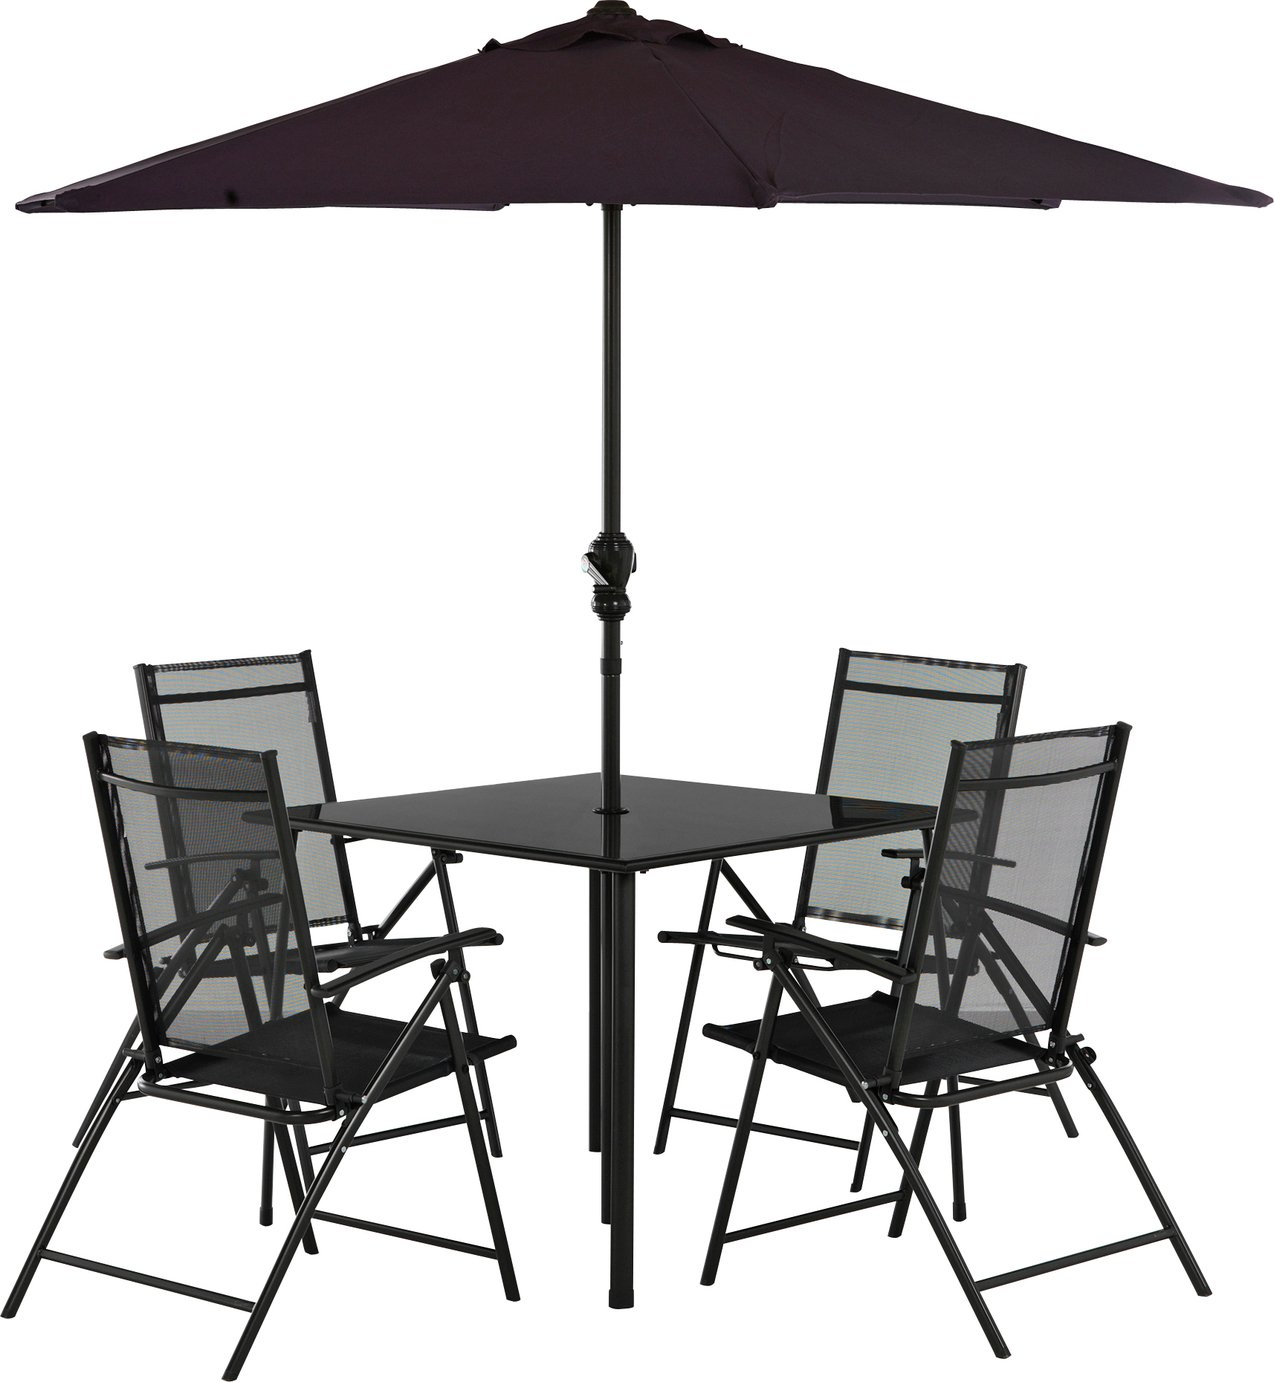 argos garden chairs and tables. buy home milan 4 seater patio set at argos.co.uk - your online shop for garden table and chair sets, furniture, home garden. argos chairs tables e